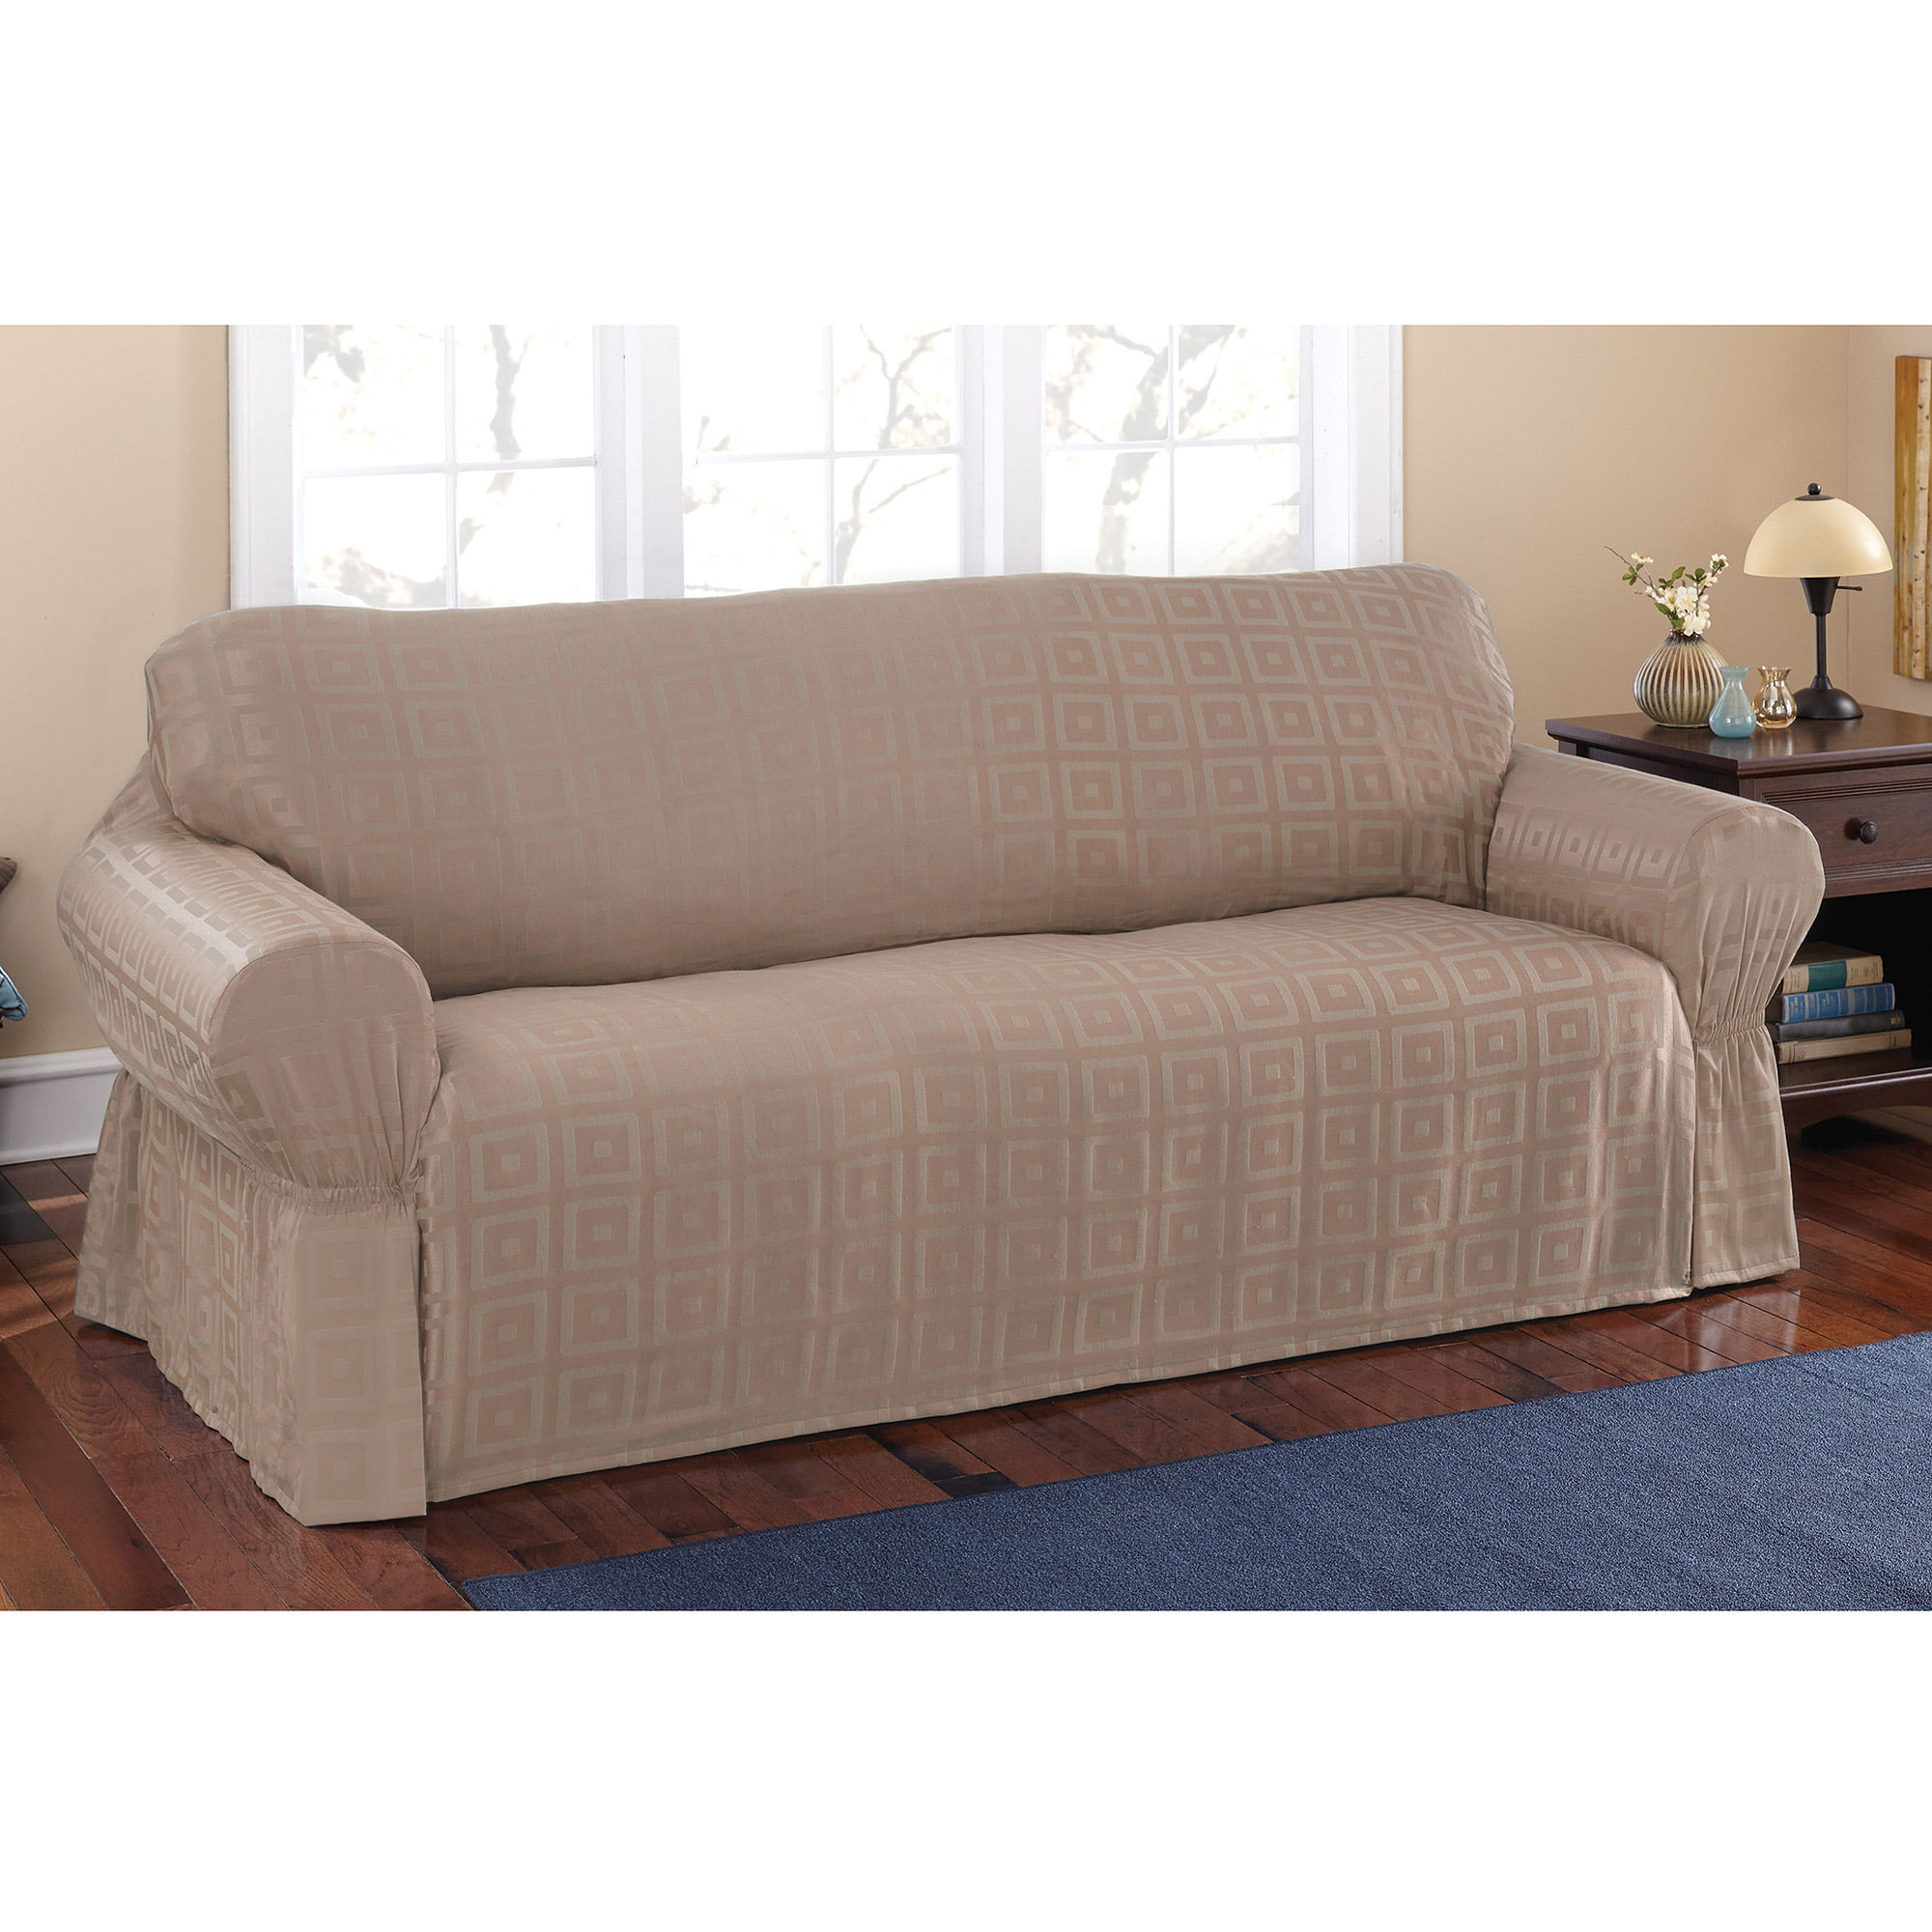 Mainstays Sherwood Slipcover Sofa by Maytex Mills